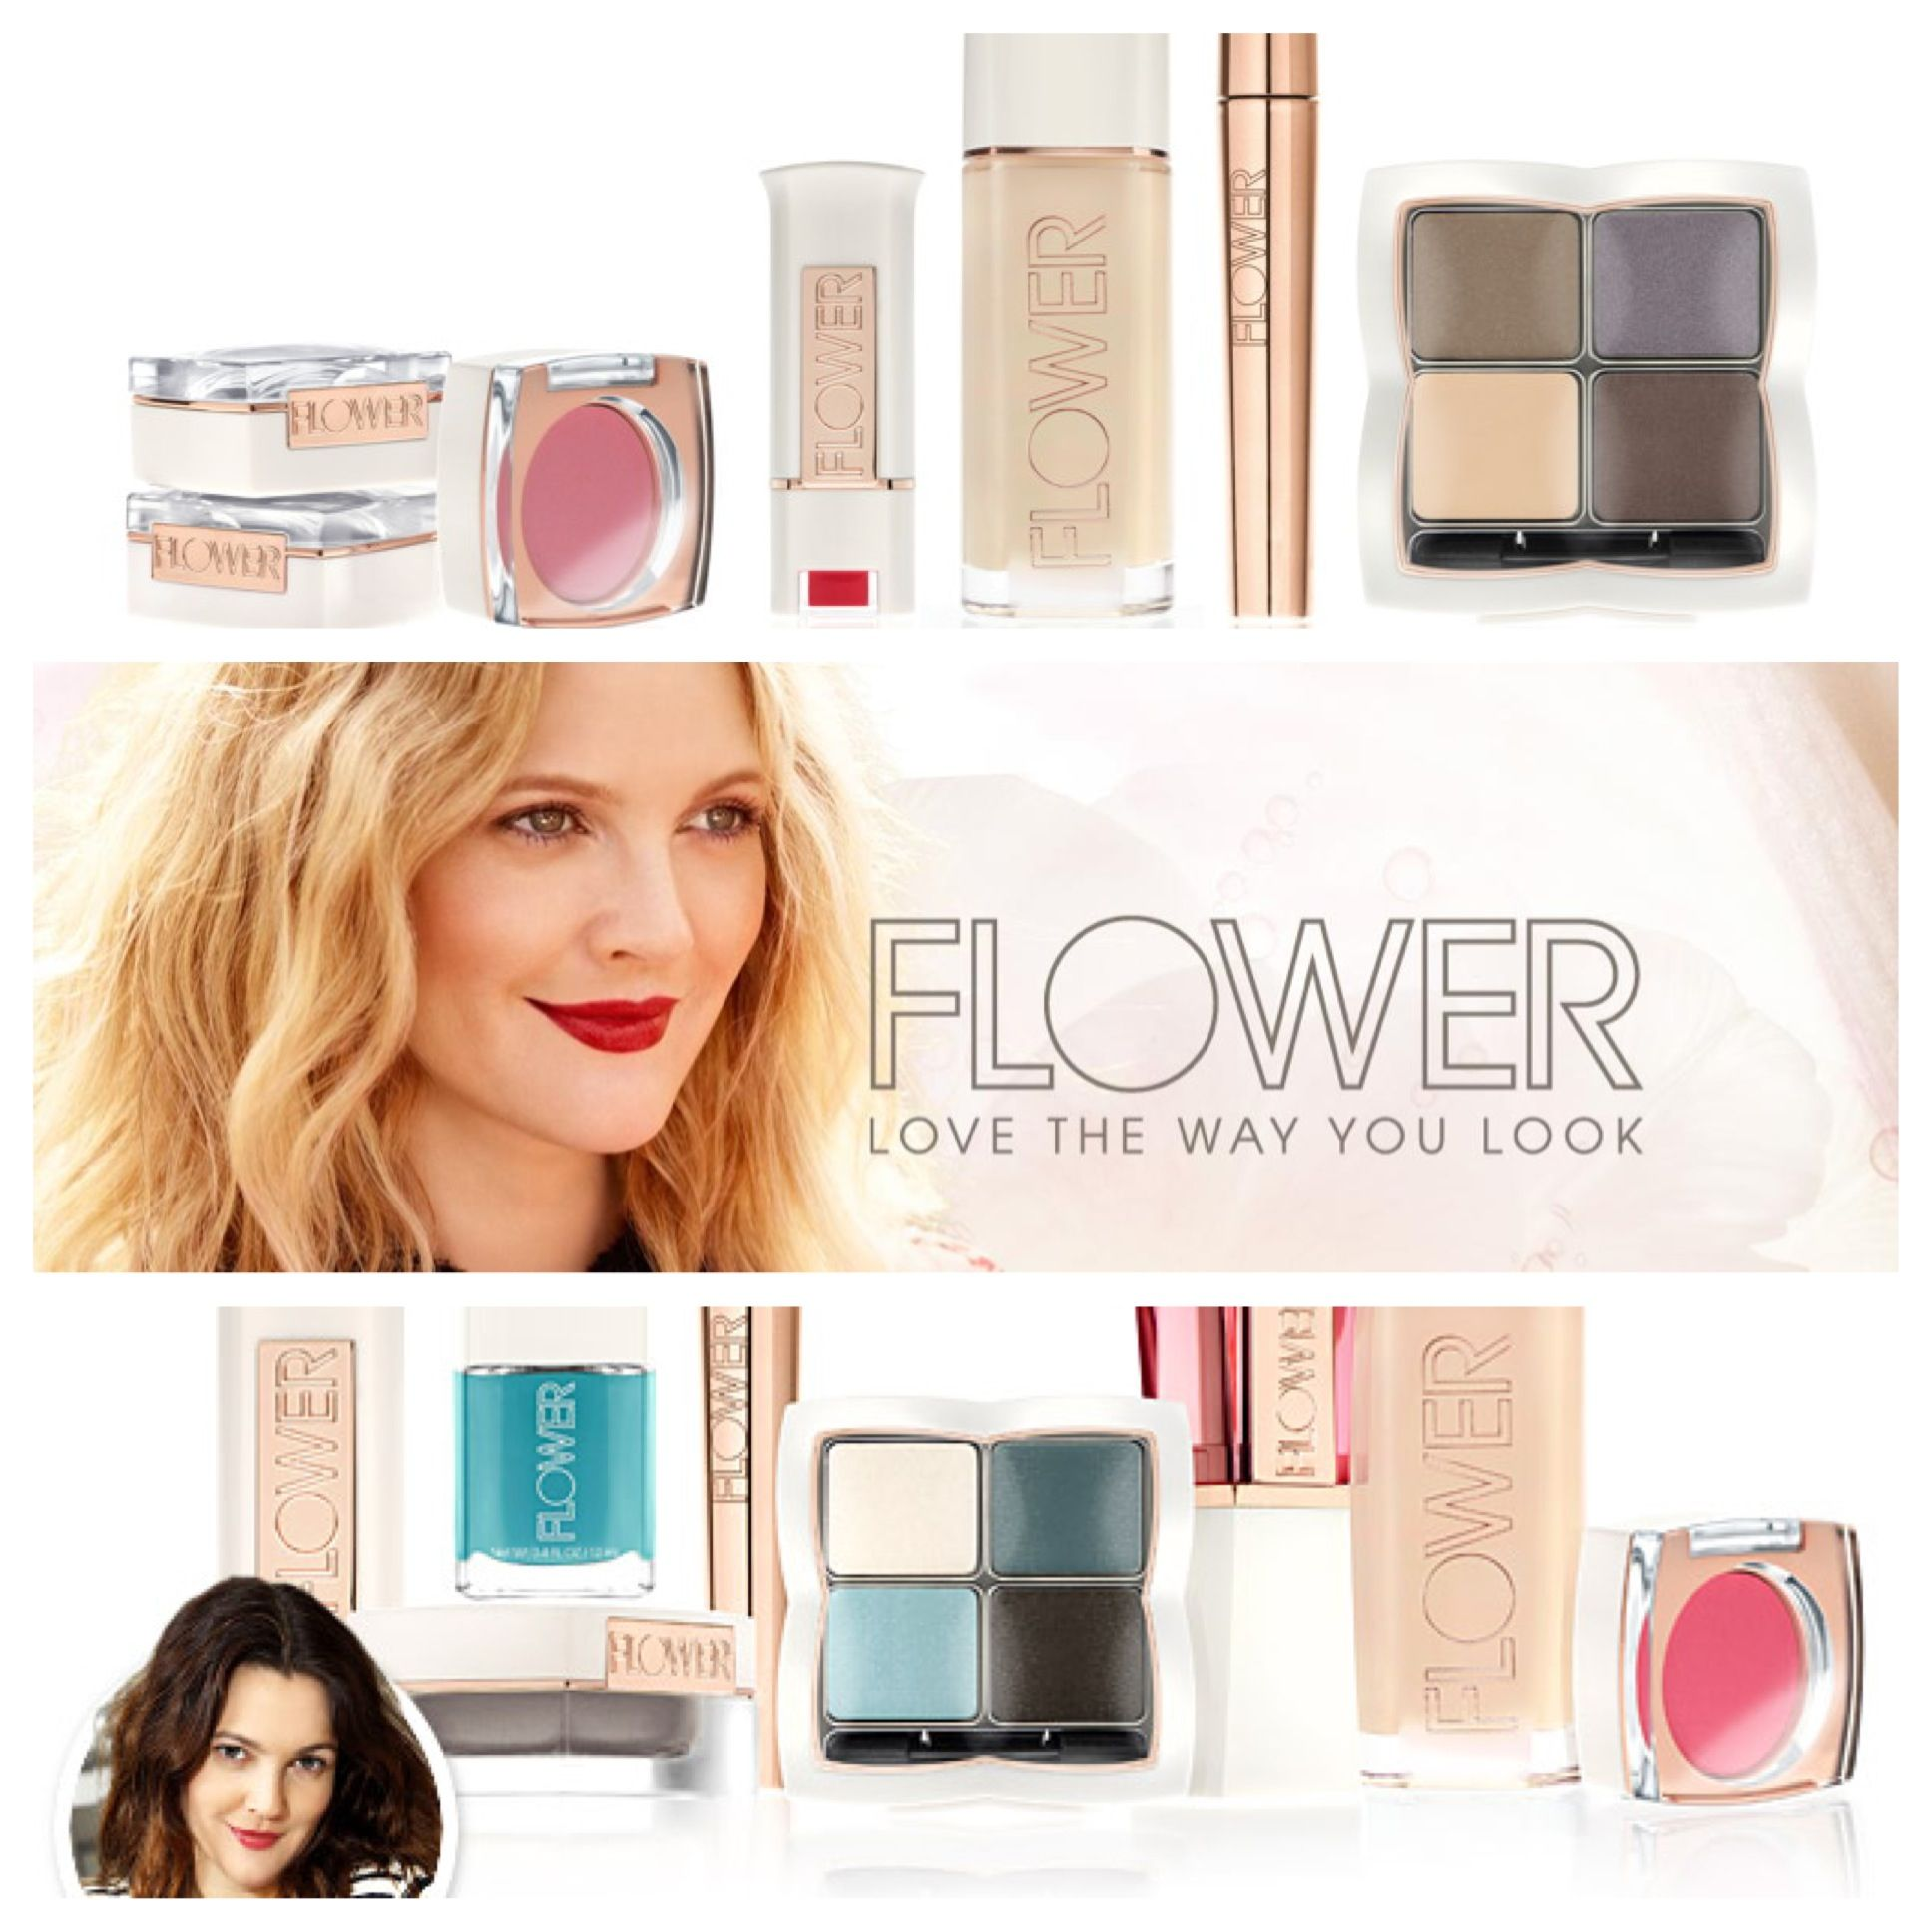 Flower Beauty Makeup Cosmetics By Drew Barrymore I Want To Try